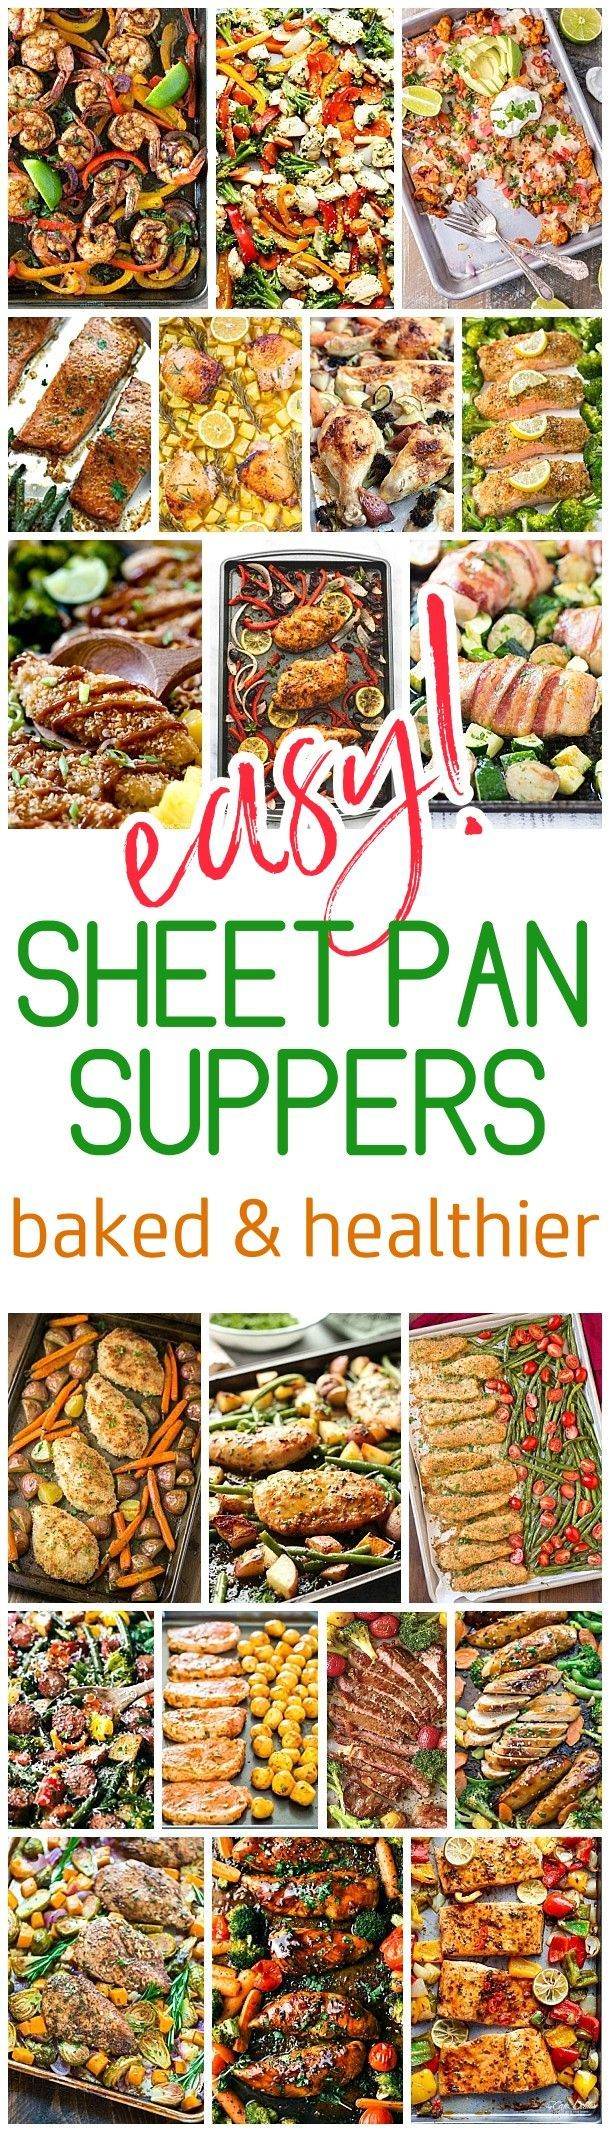 Easy One Sheet Pan Healthier Baked Family Suppers Recipes via Dreaming in DIY - Cleanup and Meal Prep is a BREEZE for quick lunch and simple dinner options. Using less oils and grease, these baked options will become your family favorites!